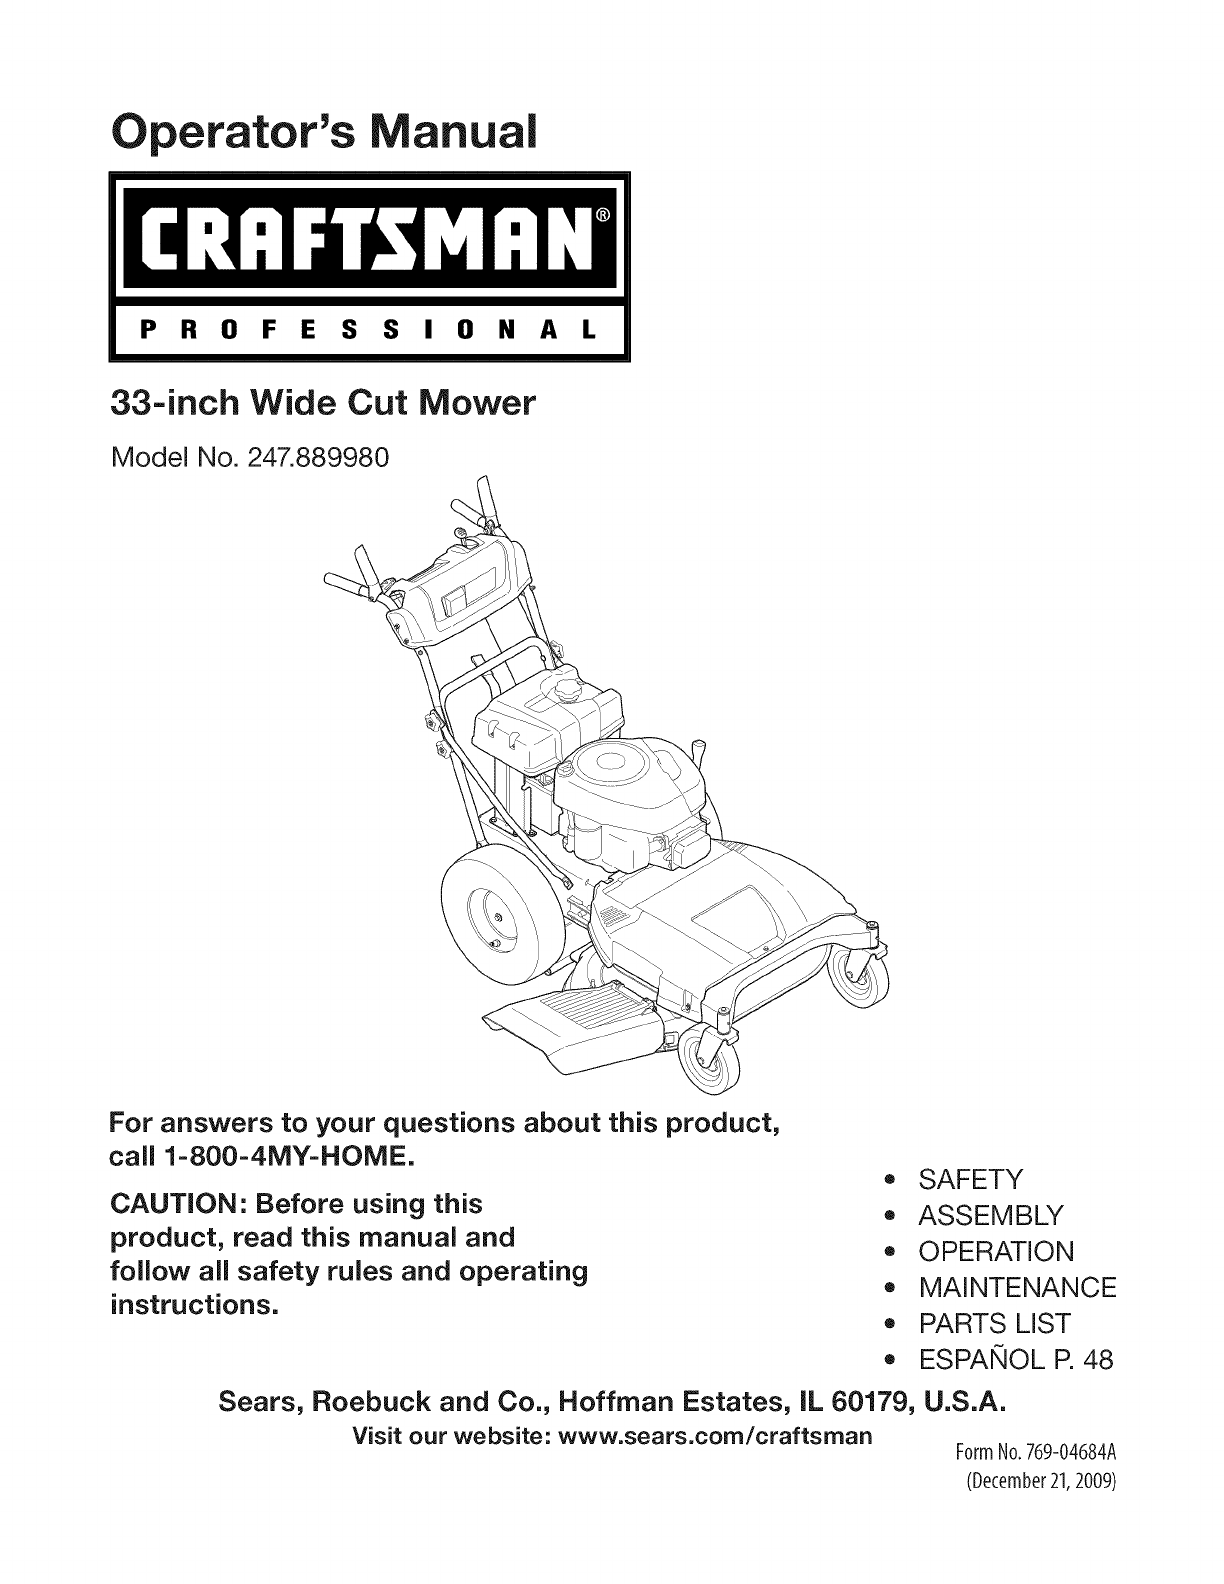 e941d769 5f50 49c0 9353 4a40e8257528 bg1 craftsman lawn mower 247 889980 user guide manualsonline com  at bakdesigns.co